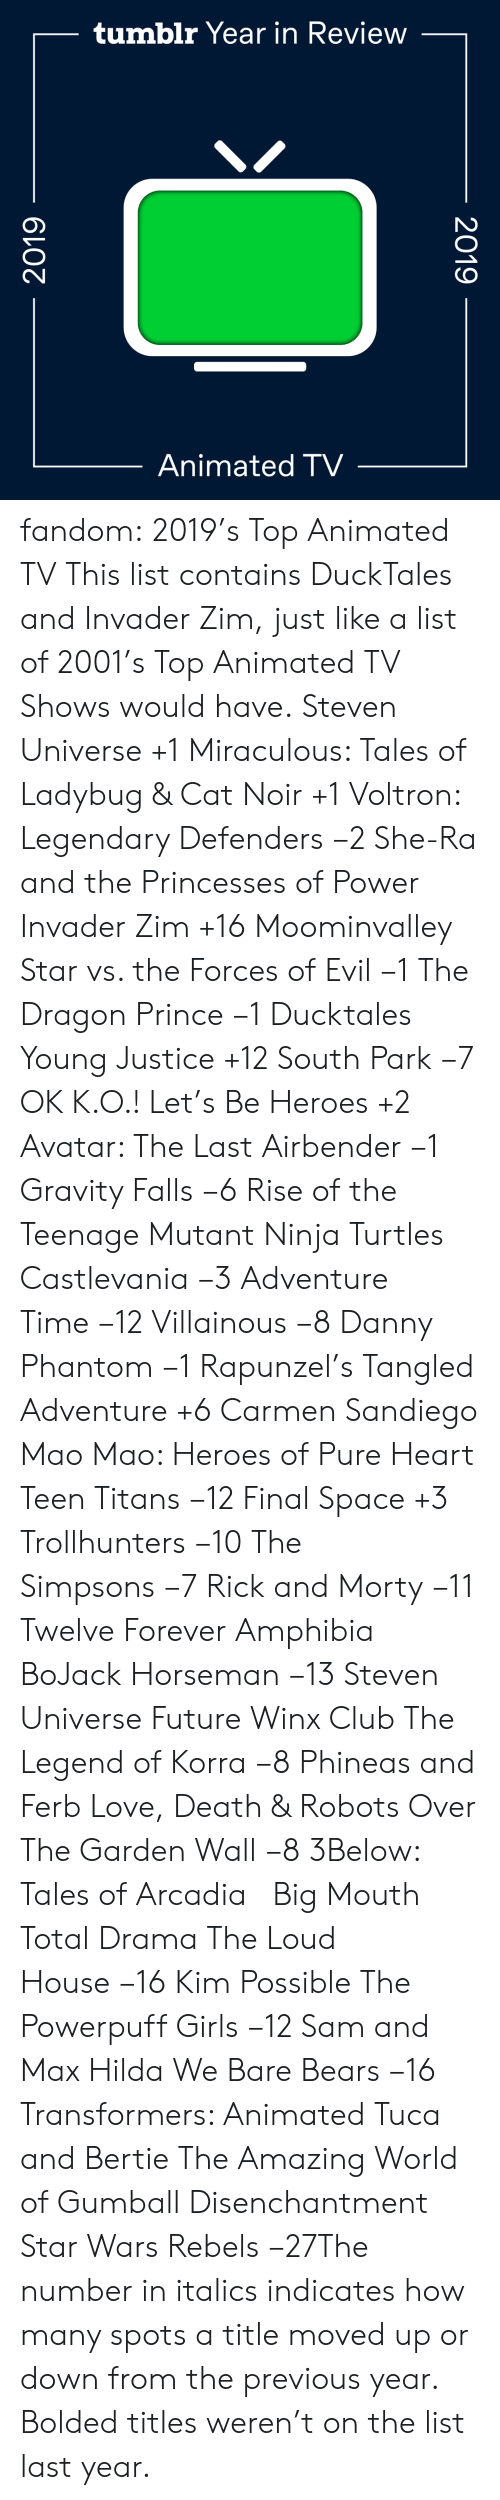 Justice: tumblr Year in Review  Animated TV  2019  2019 fandom:  2019's Top Animated TV  This list contains DuckTales and Invader Zim, just like a list of 2001's Top Animated TV Shows would have.  Steven Universe +1  Miraculous: Tales of Ladybug & Cat Noir +1  Voltron: Legendary Defenders −2  She-Ra and the Princesses of Power   Invader Zim +16  Moominvalley  Star vs. the Forces of Evil −1  The Dragon Prince −1  Ducktales  Young Justice +12  South Park −7  OK K.O.! Let's Be Heroes +2  Avatar: The Last Airbender −1  Gravity Falls −6  Rise of the Teenage Mutant Ninja Turtles  Castlevania −3  Adventure Time −12  Villainous −8  Danny Phantom −1  Rapunzel's Tangled Adventure +6  Carmen Sandiego  Mao Mao: Heroes of Pure Heart  Teen Titans −12  Final Space +3  Trollhunters −10  The Simpsons −7  Rick and Morty −11  Twelve Forever  Amphibia  BoJack Horseman −13  Steven Universe Future  Winx Club  The Legend of Korra −8  Phineas and Ferb  Love, Death & Robots  Over The Garden Wall −8  3Below: Tales of Arcadia    Big Mouth  Total Drama  The Loud House −16  Kim Possible  The Powerpuff Girls −12  Sam and Max  Hilda  We Bare Bears −16  Transformers: Animated  Tuca and Bertie  The Amazing World of Gumball  Disenchantment Star Wars Rebels −27The number in italics indicates how many spots a title moved up or down from the previous year. Bolded titles weren't on the list last year.